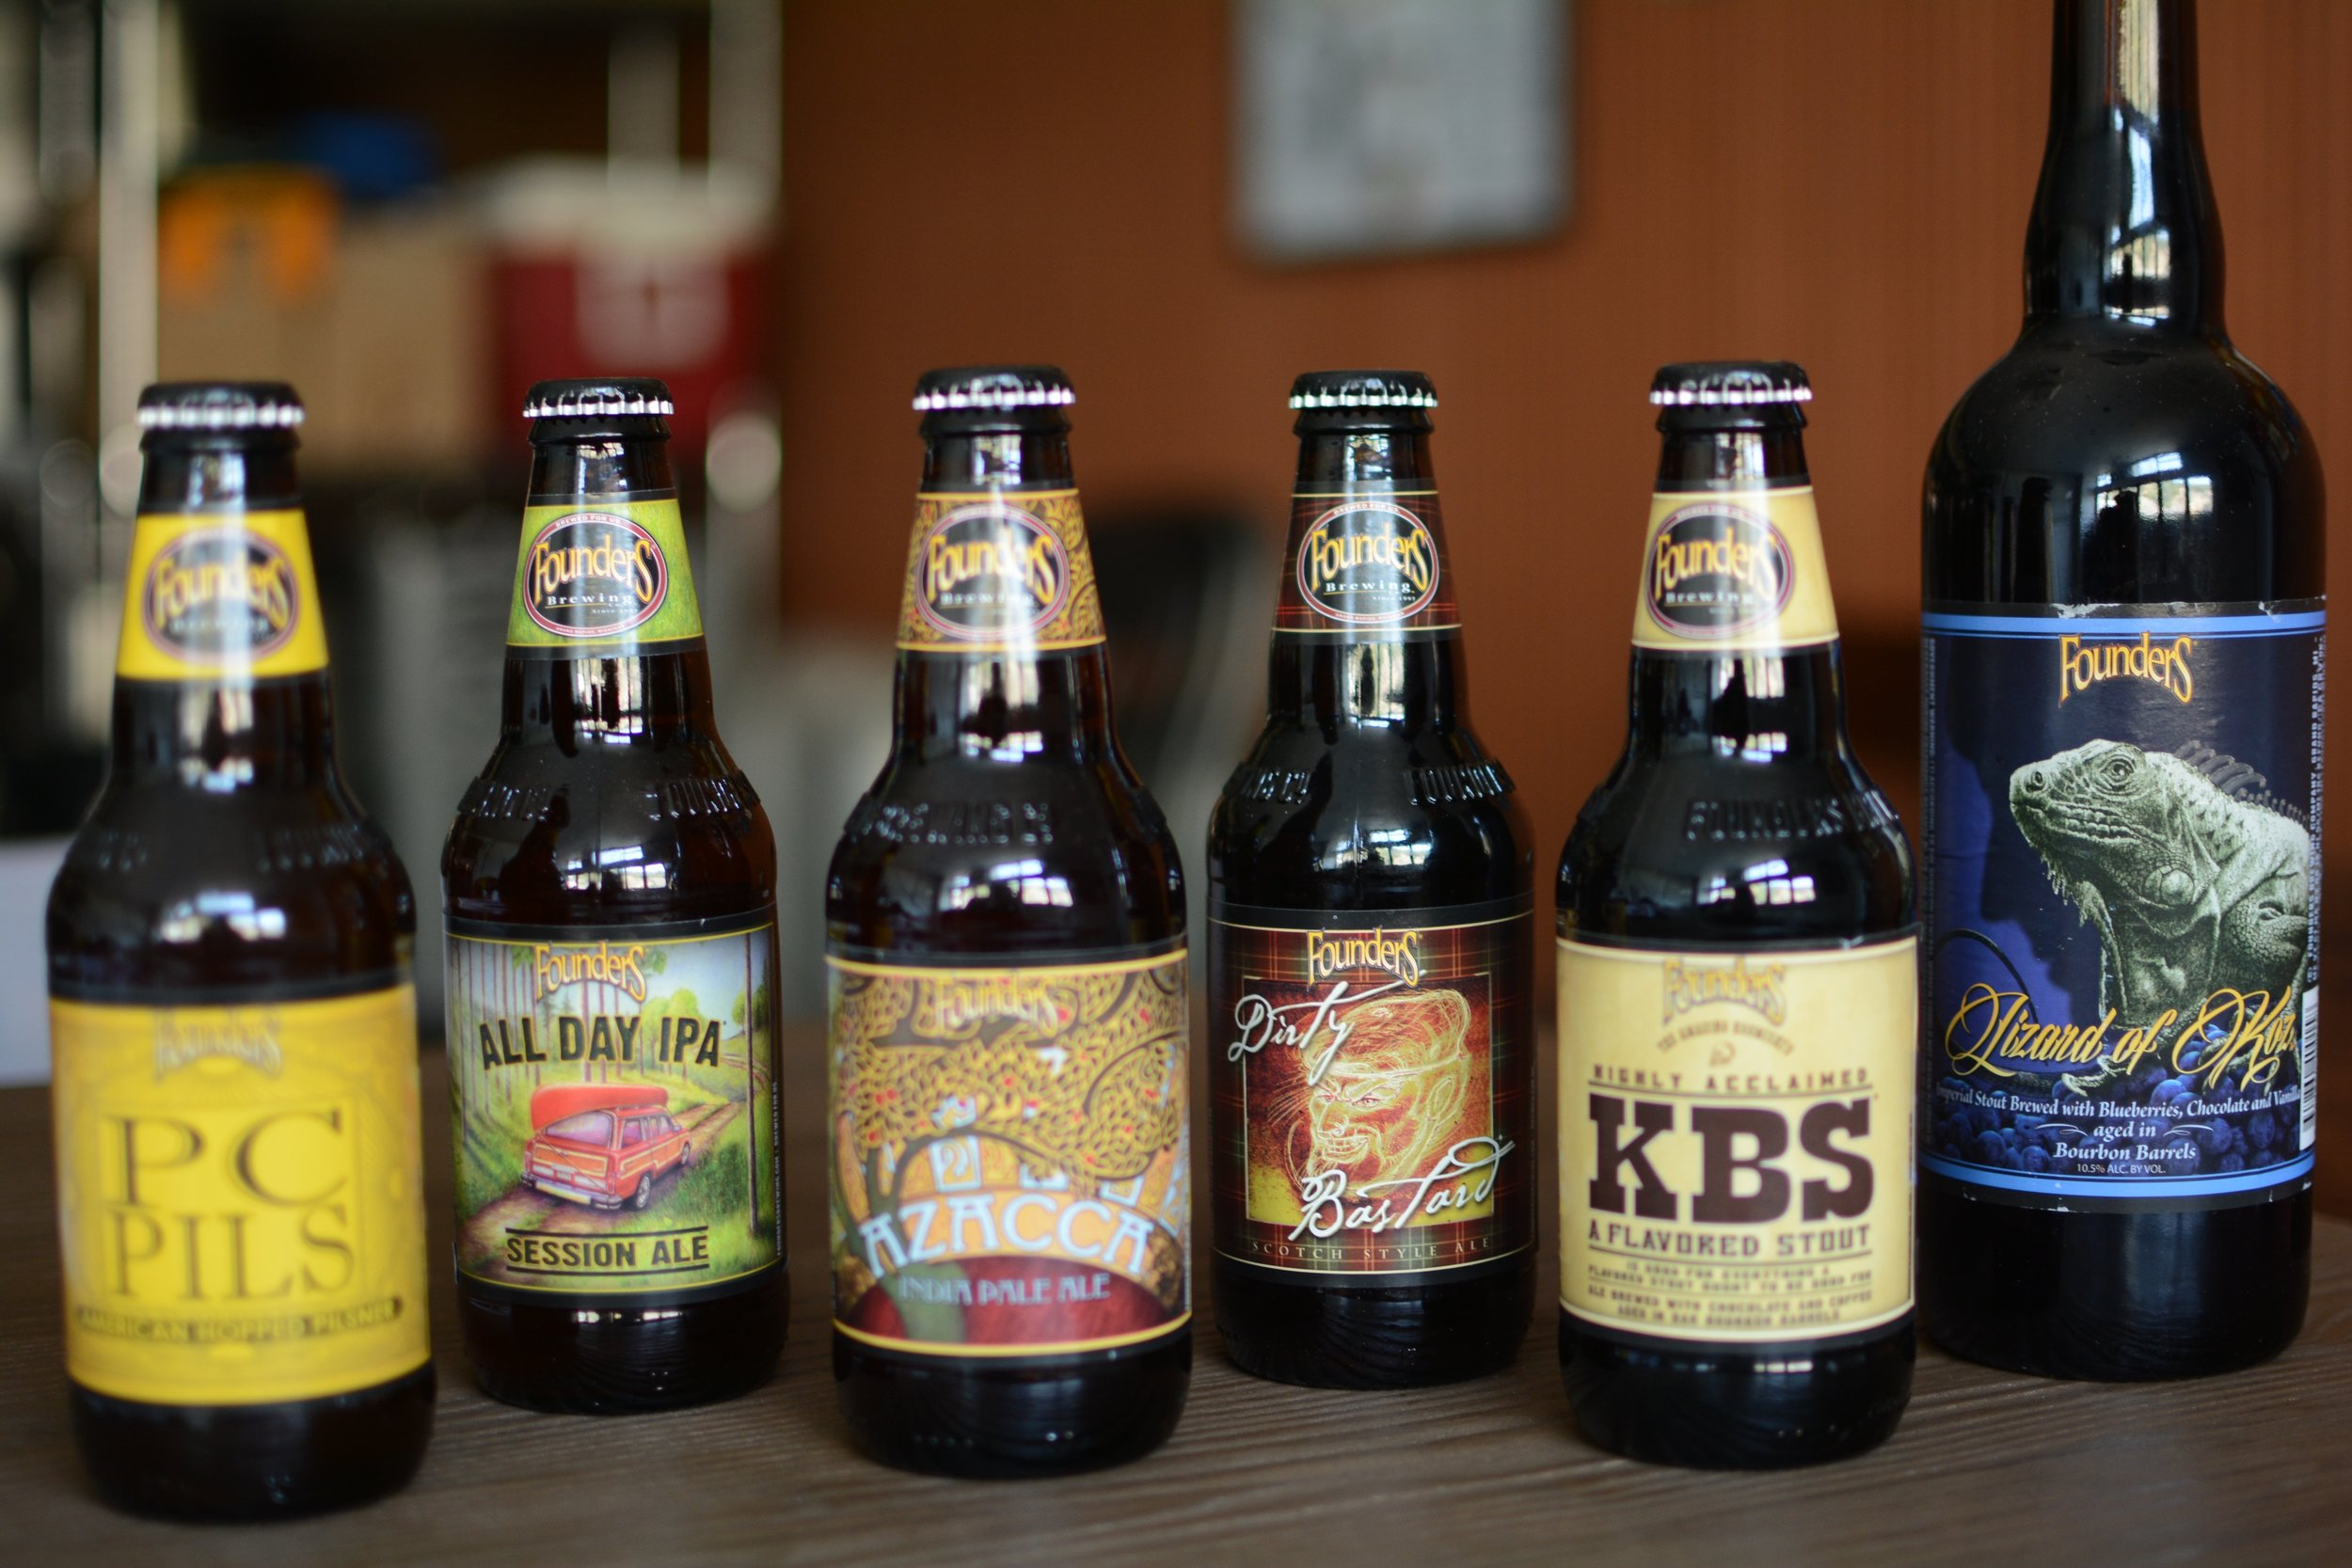 The line-up of beers for the Founder's Tasting event.